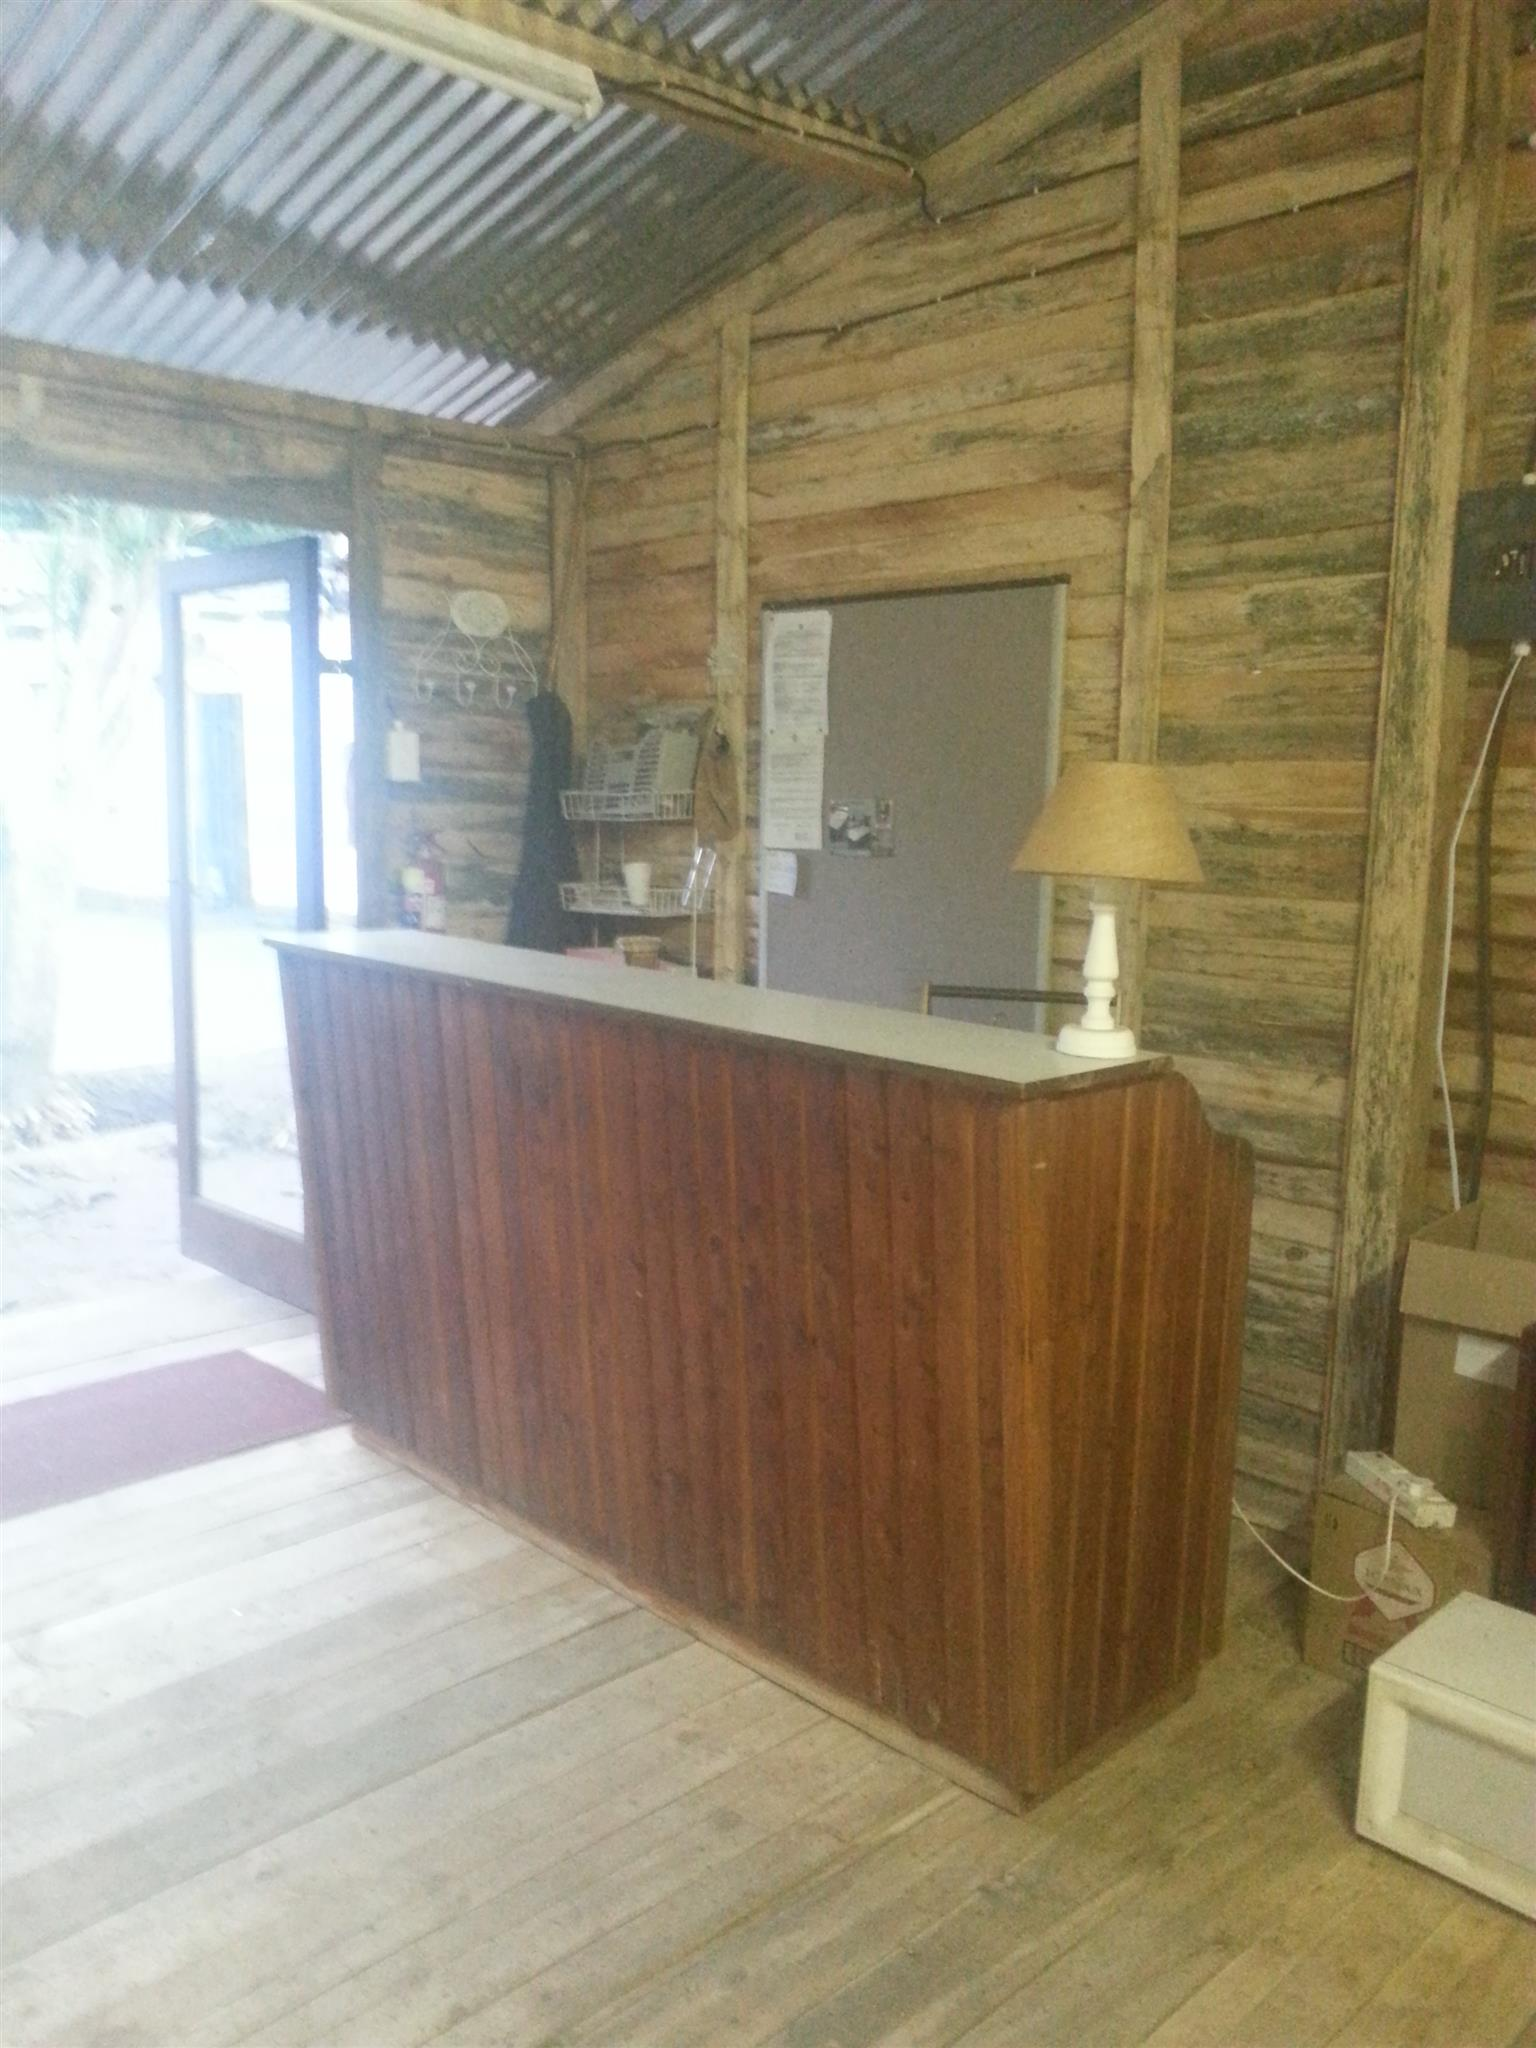 Massive Bar / Shop Counter - Lots of storage space inside